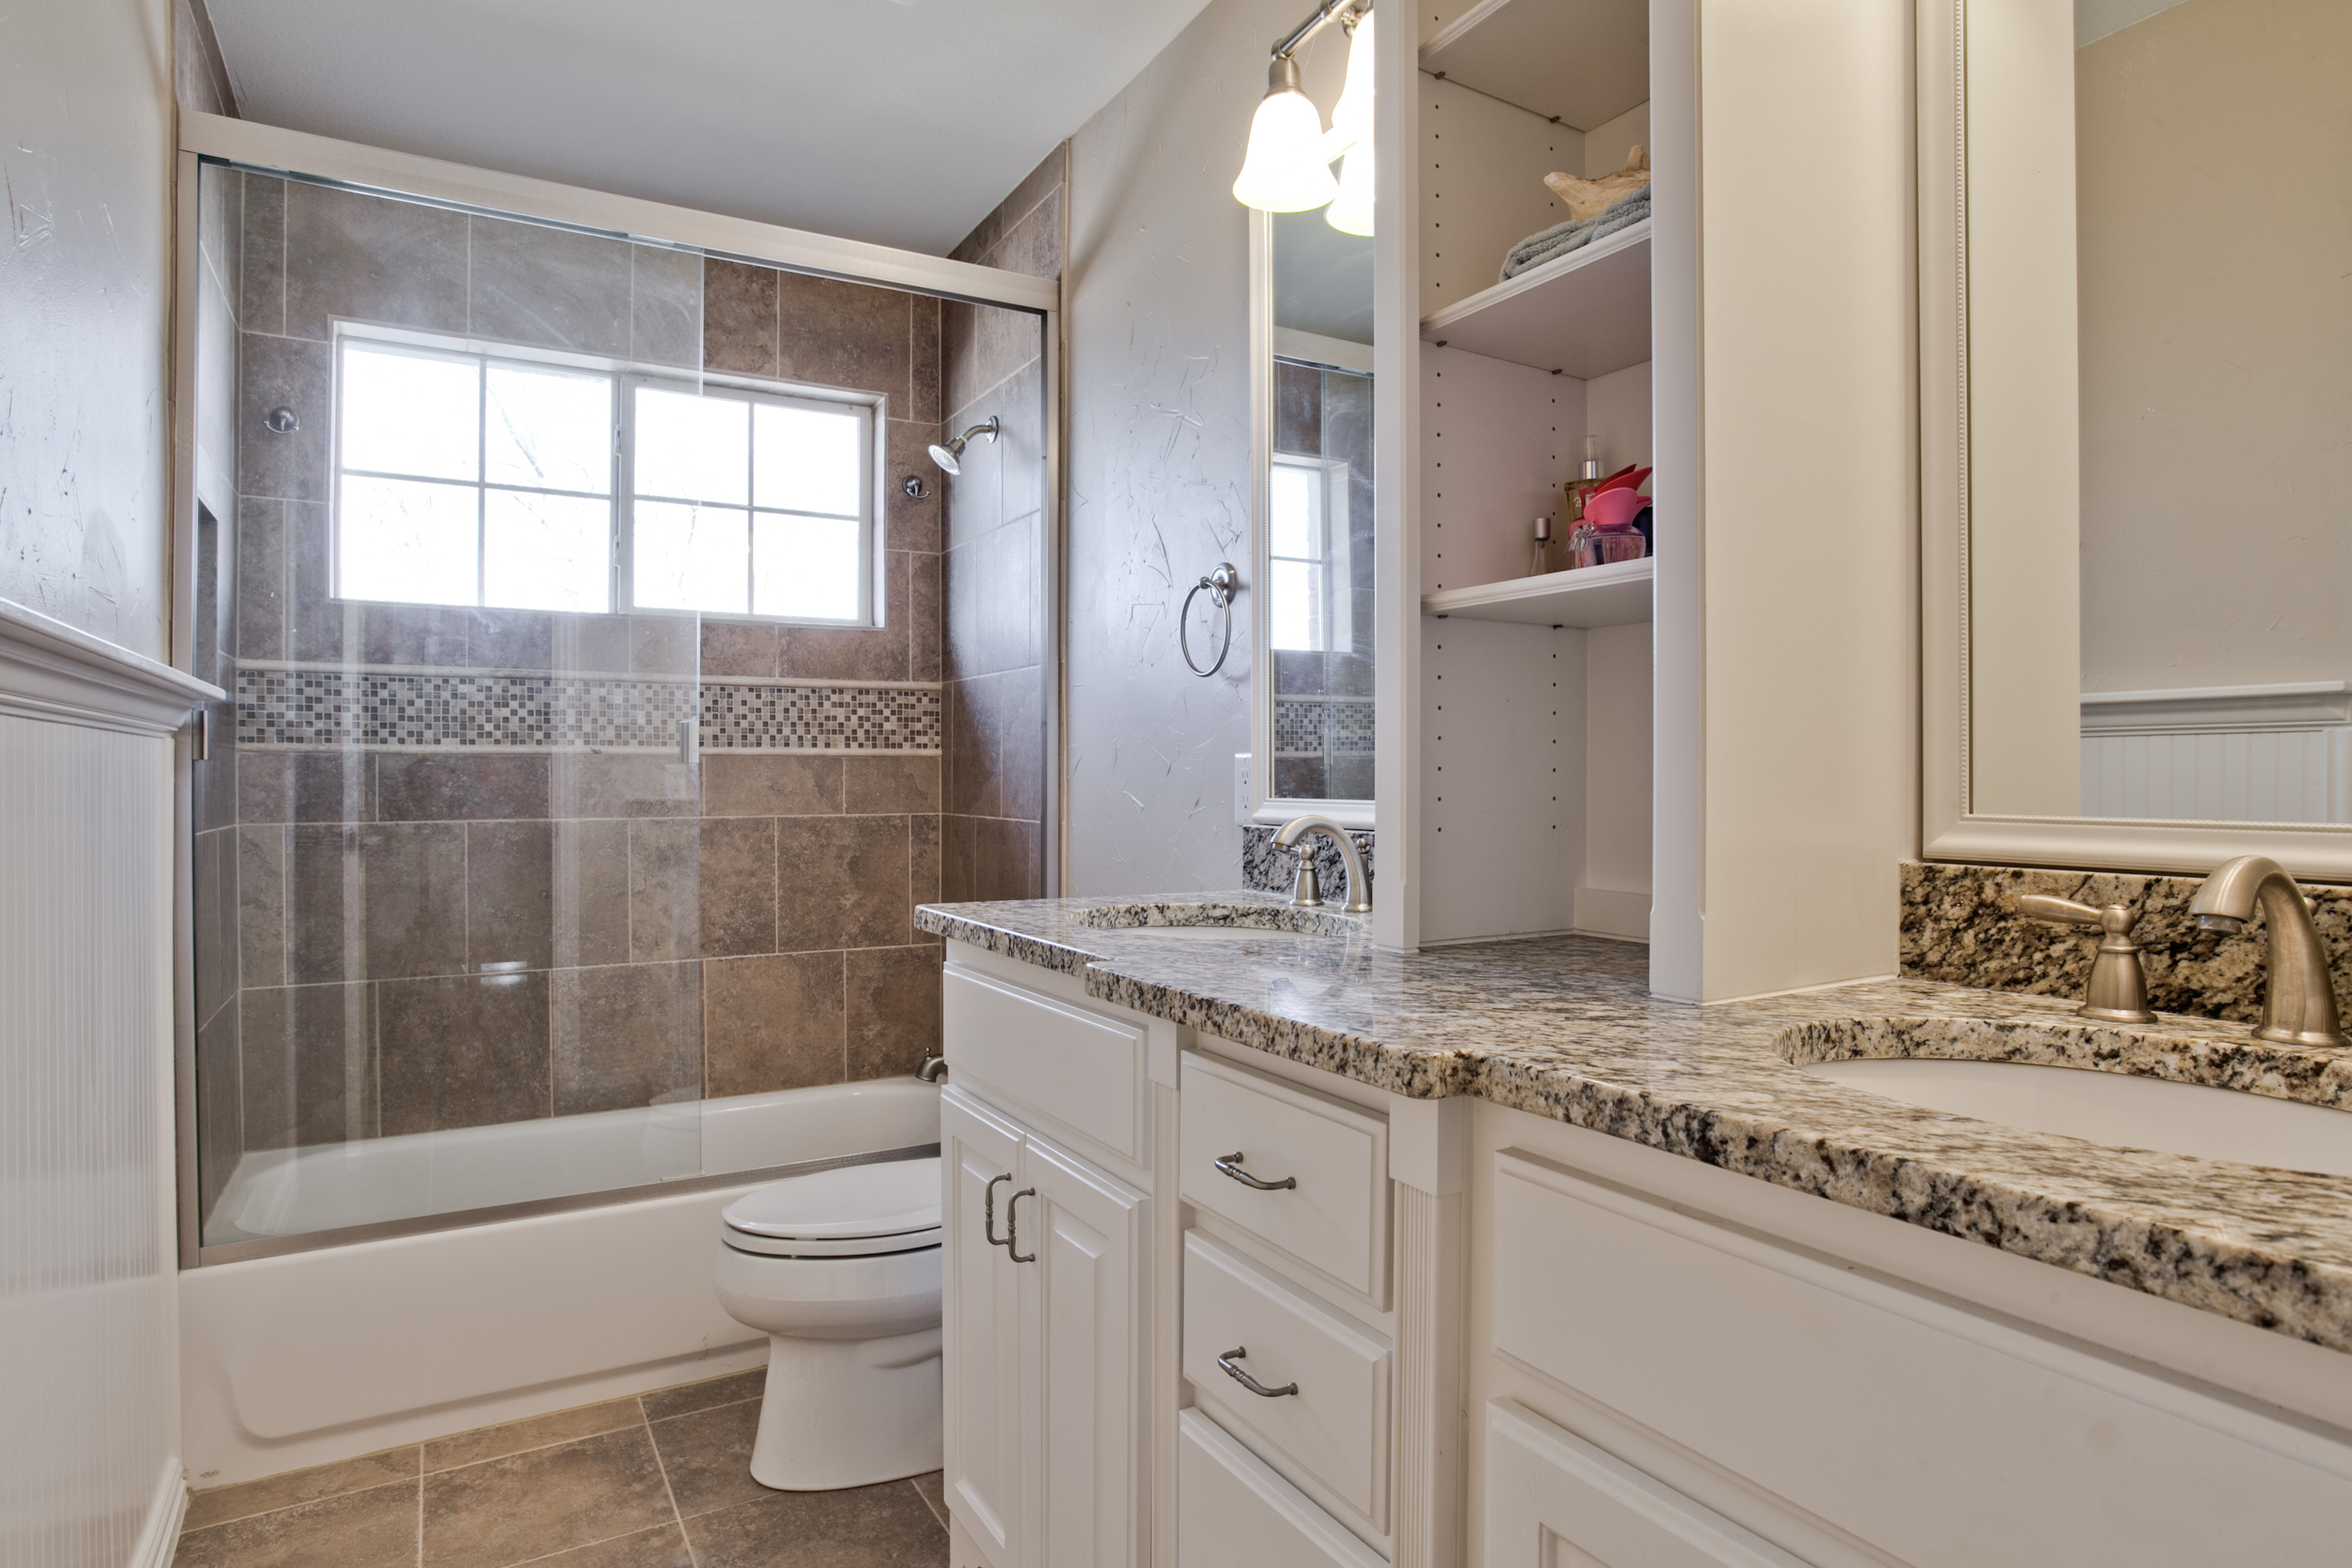 50-Smart-Bathroom-Storage-Ideas-with-White-Woods-Materials-And-Target-Shelves-Also-Drawers-Storage-With-Grey-Granite-On-Tops-Single-Sink-Ideas